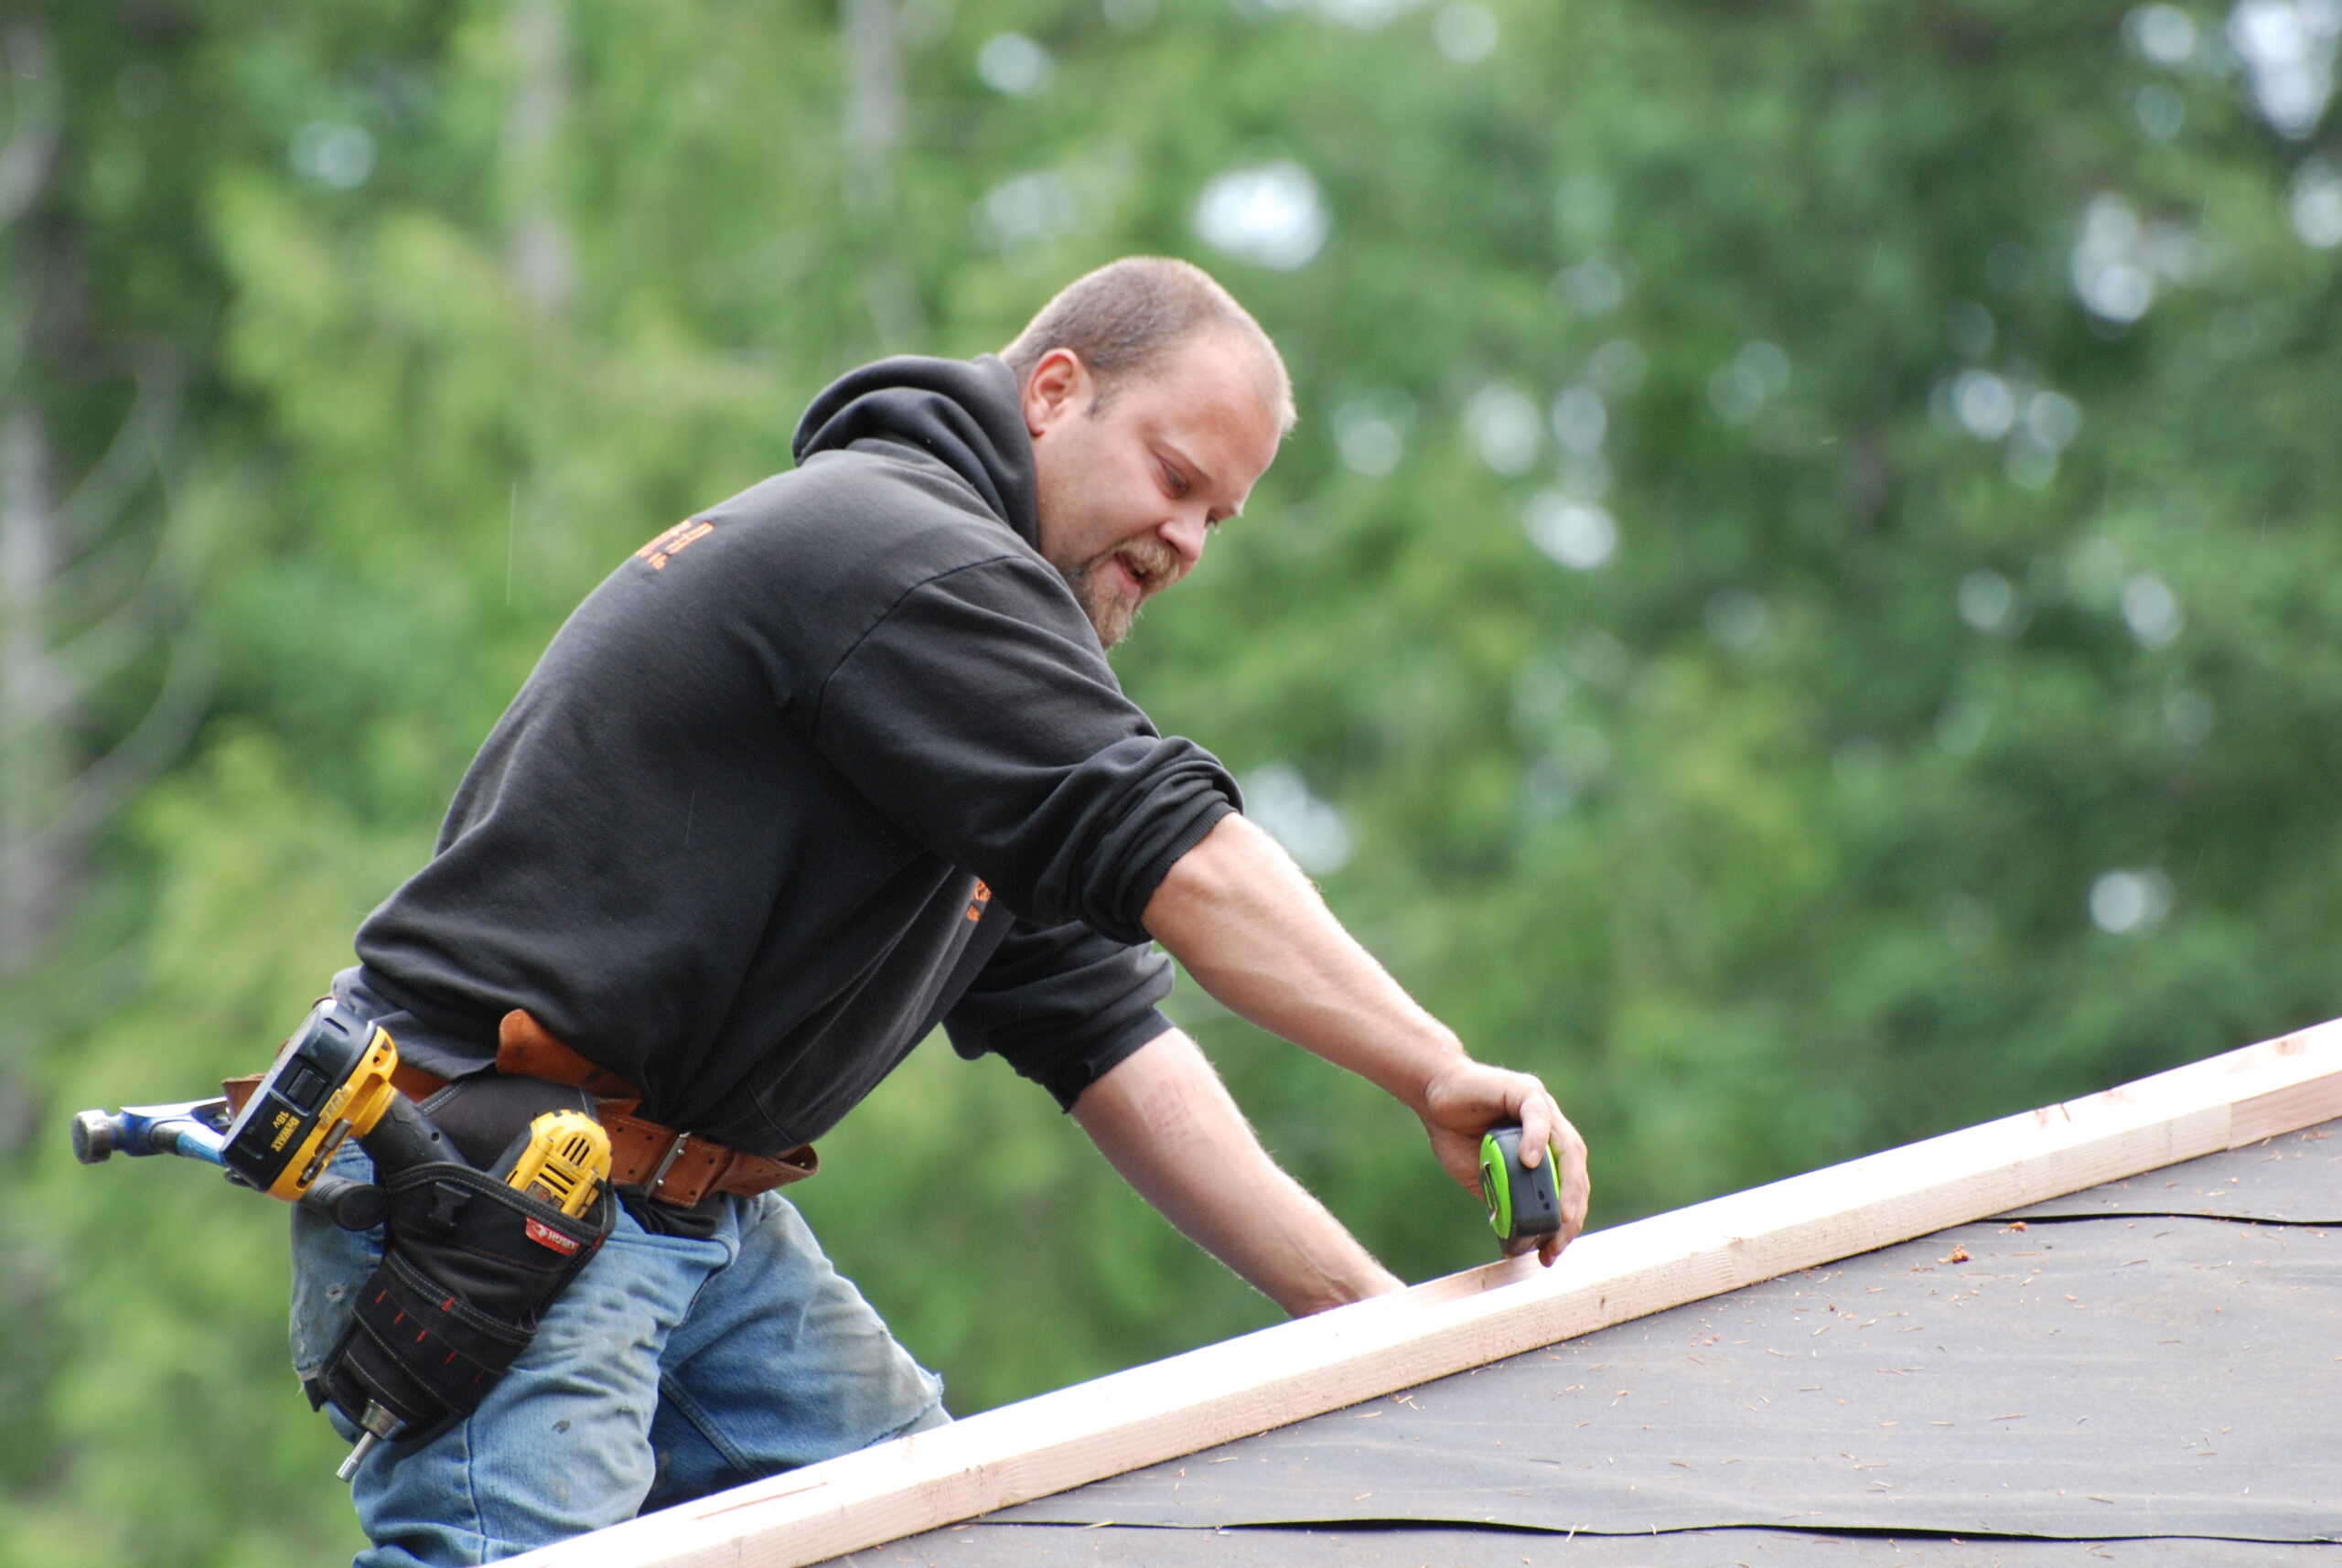 Roofer Taking Measurements of Roof